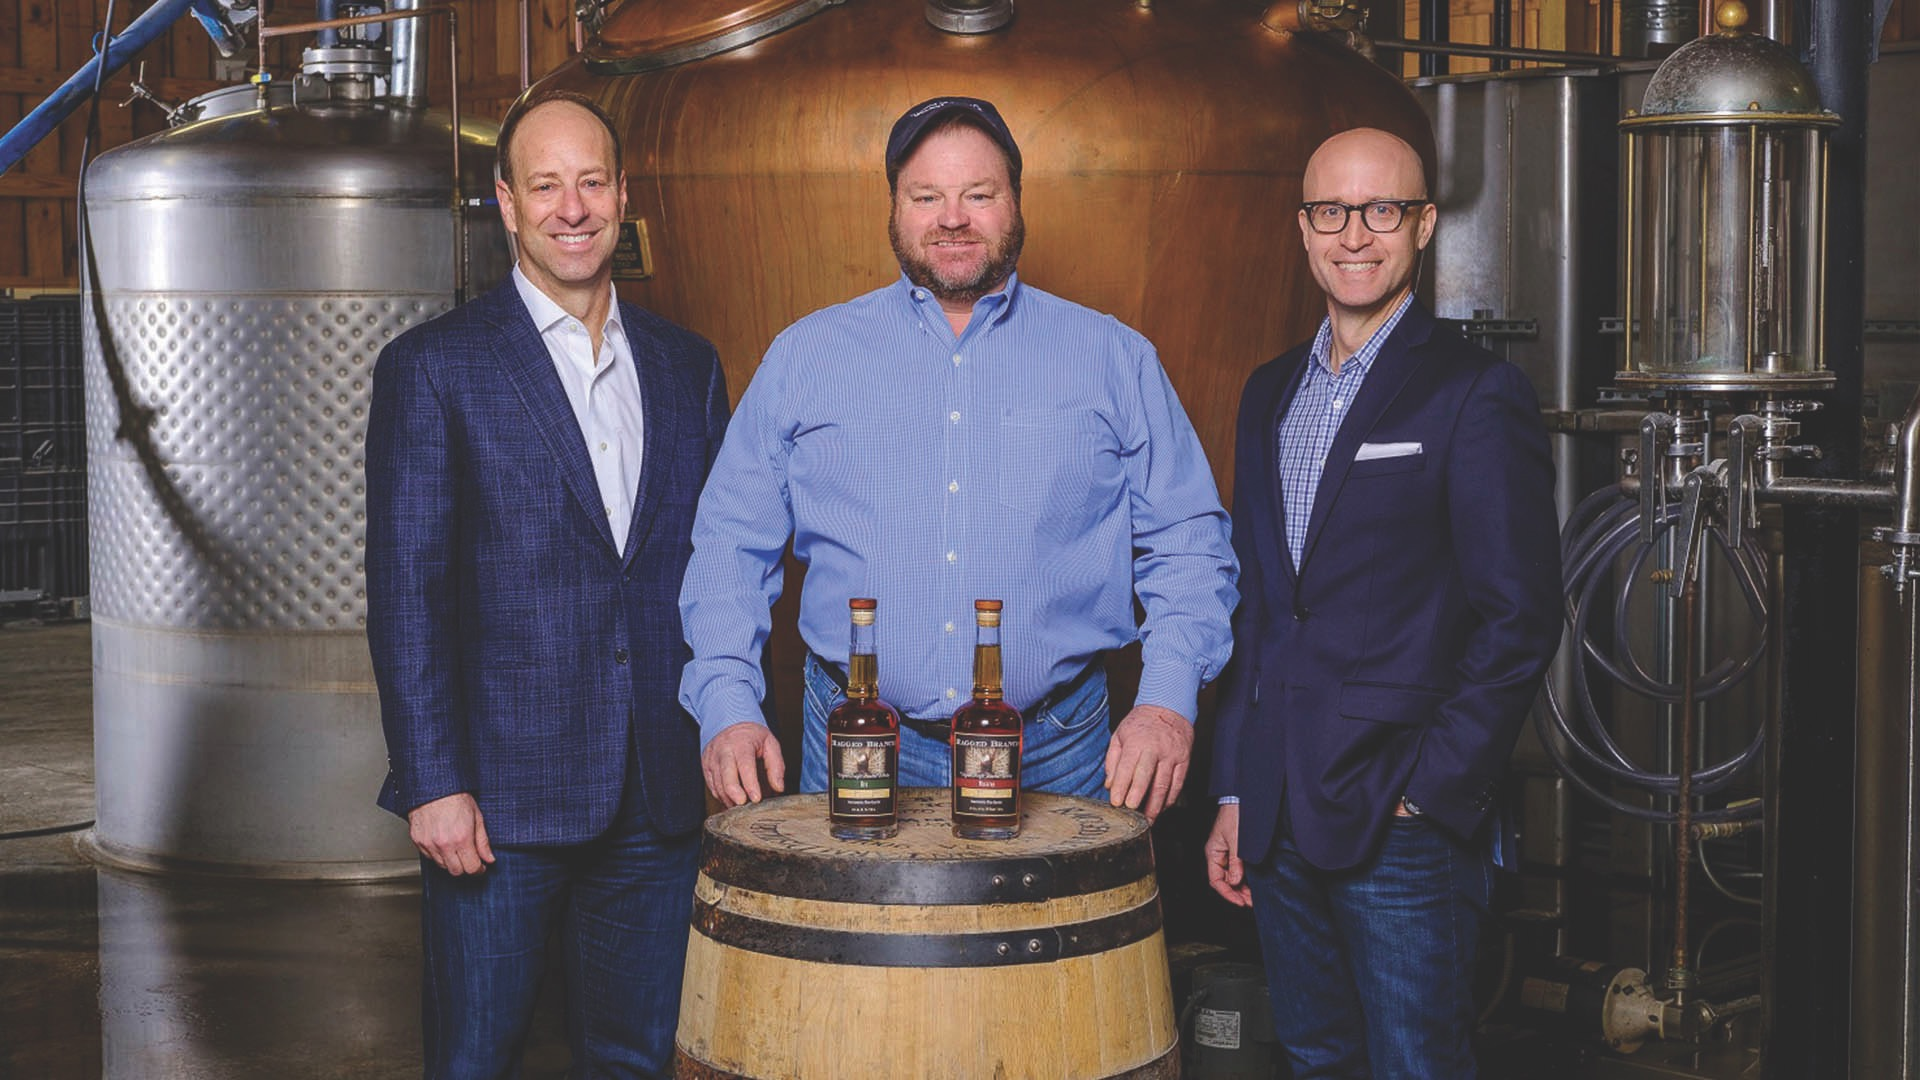 Ragged Branch founders/distillers